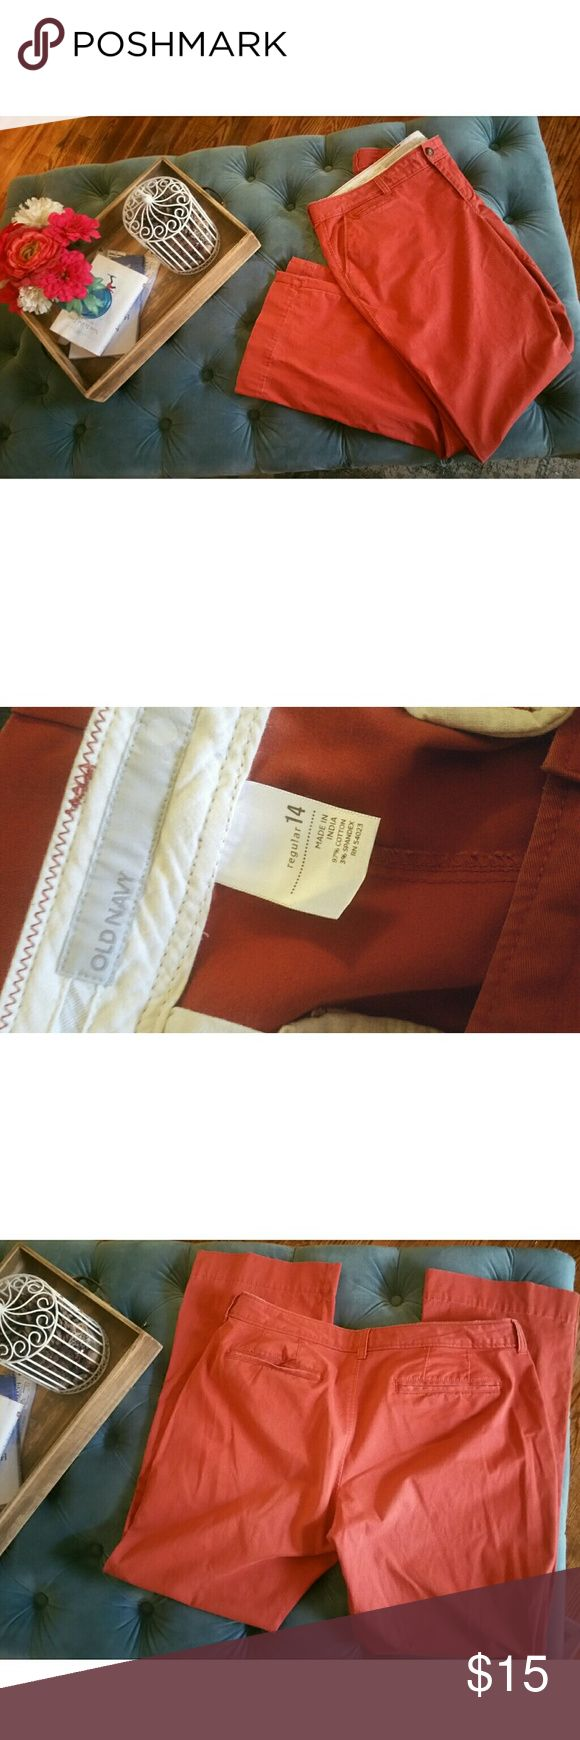 🍂FLASH SALE OLD NAVY Burnt Orange Pants 14 🍂FLASH SALE - TODAY ONLY 11/21!  In perfect gently used condition. Perfect for the fall wardrobe. Have always gotten a lot of compliments when I warn these, very cute with a variety of tops!  PRICES ARE FIRM, UNLESS BUNDLED 2 OR MORE ITEMS. Old Navy Pants Boot Cut & Flare